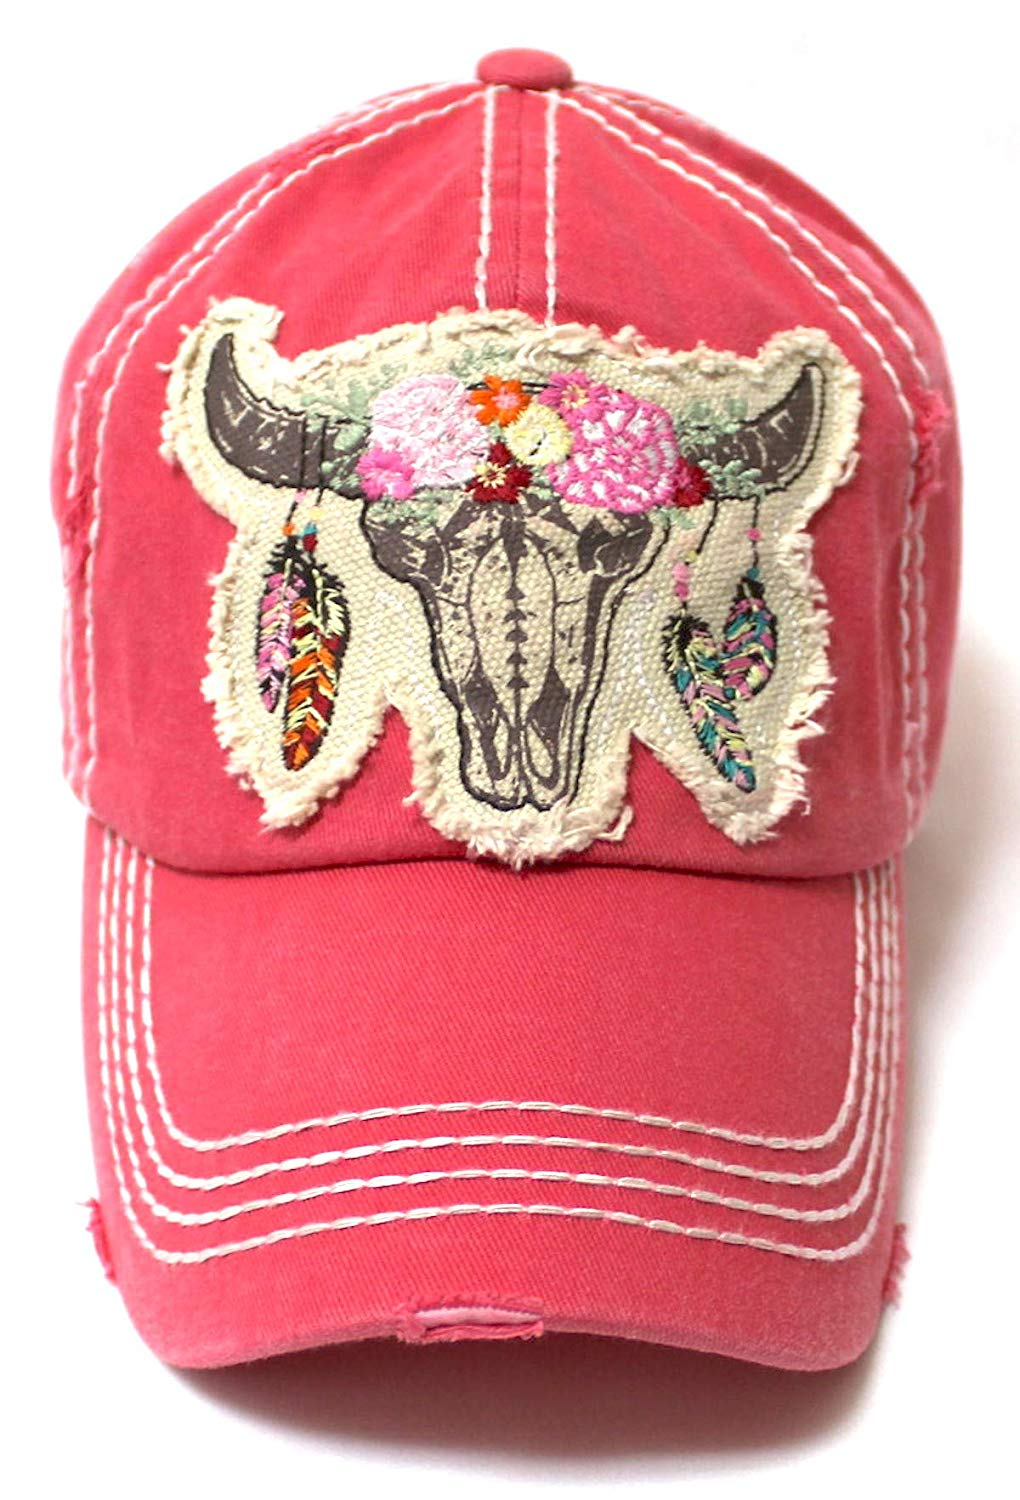 Women's Floral Cow Skull Patch Embroidery Vintage Baseball Hat, Rose Pink - Caps 'N Vintage